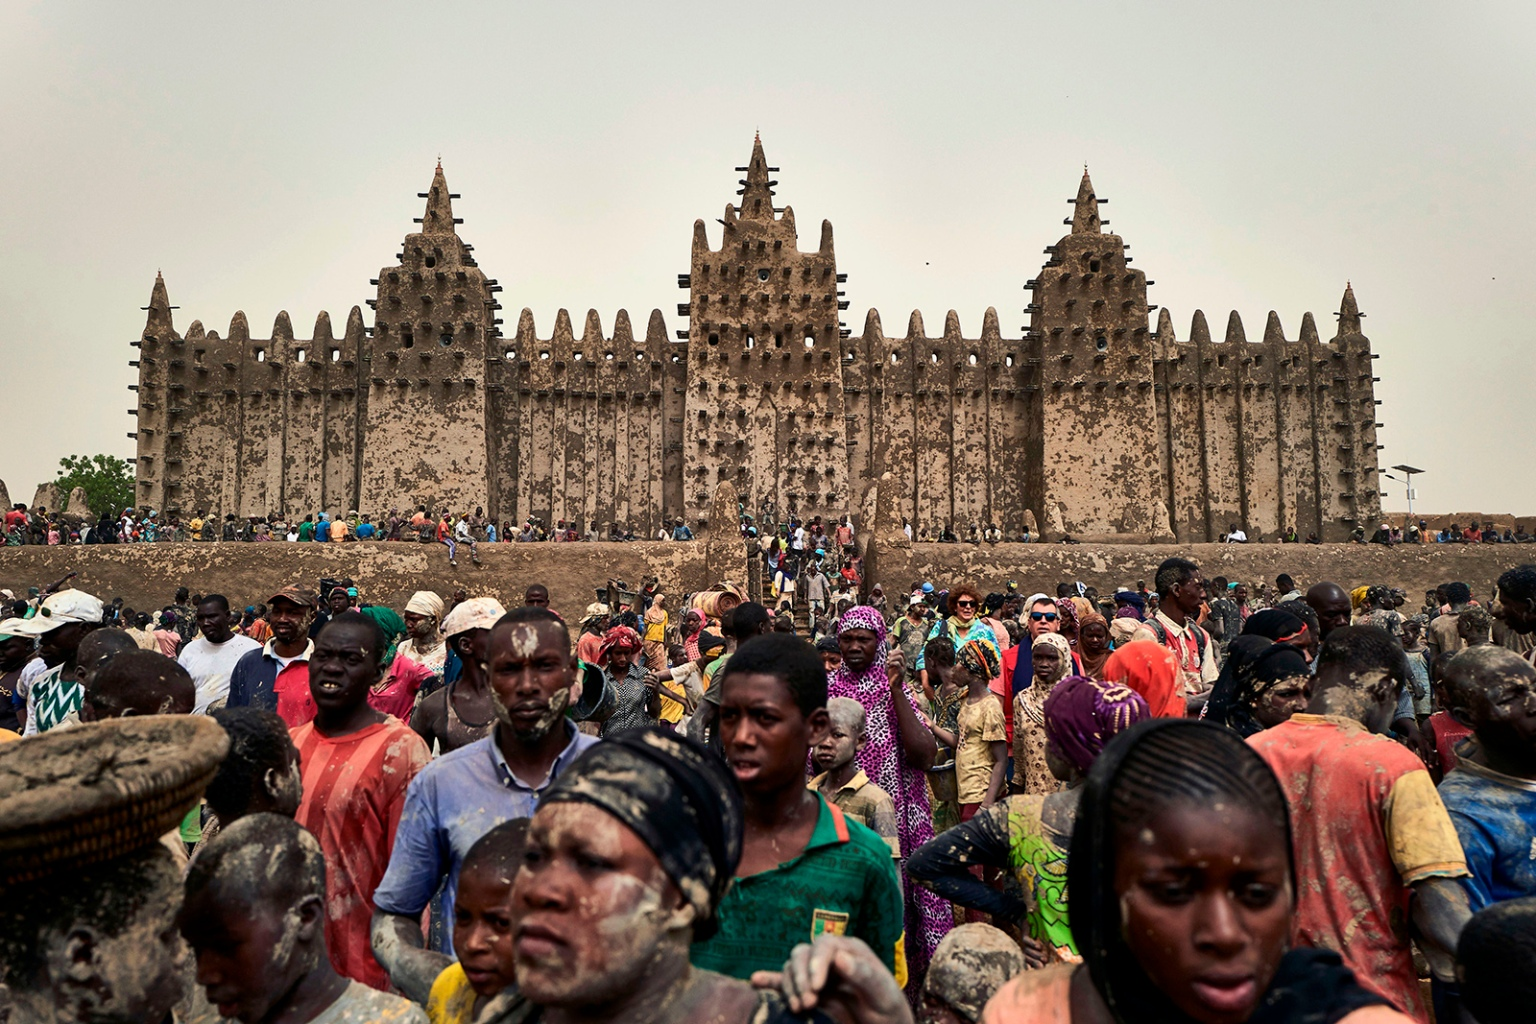 People take part in the annual rendering of the Great Mosque of Djenne in central Mali on April 28. Several thousand residents of the historic city, a UNESCO World Heritage site, render the mosque with banco—a mixture of soil and water, with rice bran, shea butter and baobab powder—to protect it from bad weather ahead of the rainy season. MICHELE CATTANI/AFP/Getty Images